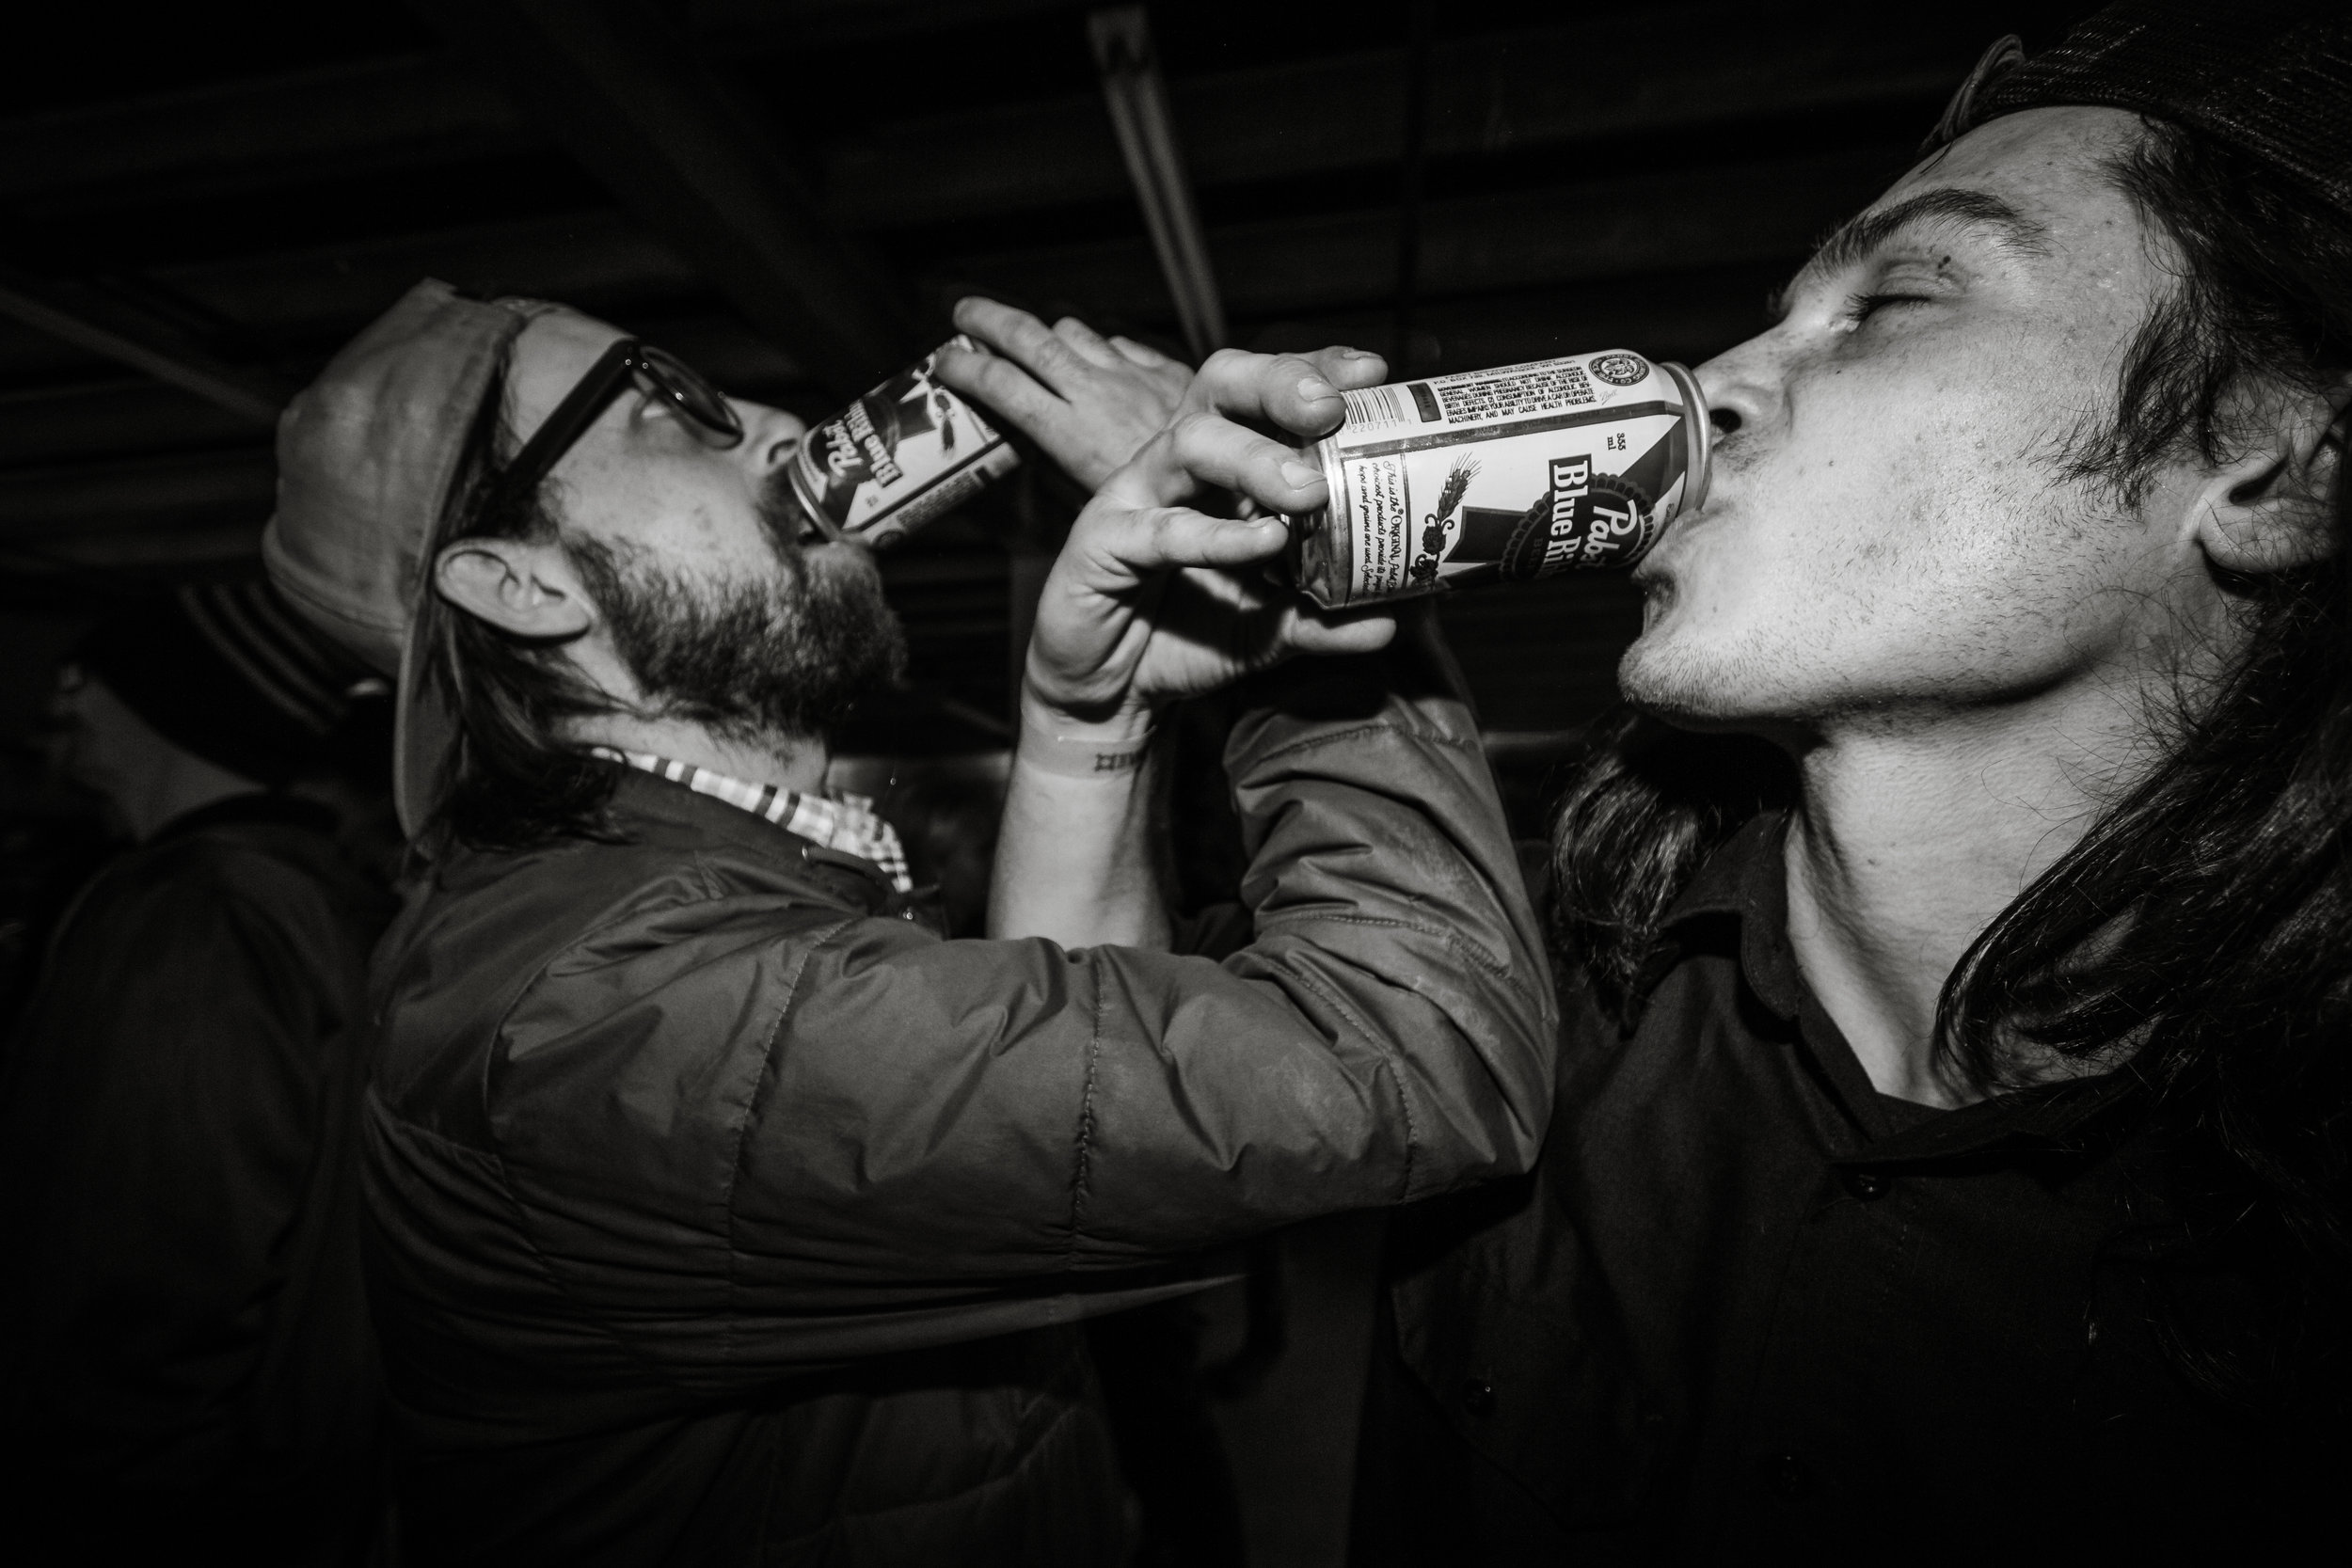 2017.2.25_party_bw (27 of 237).jpg